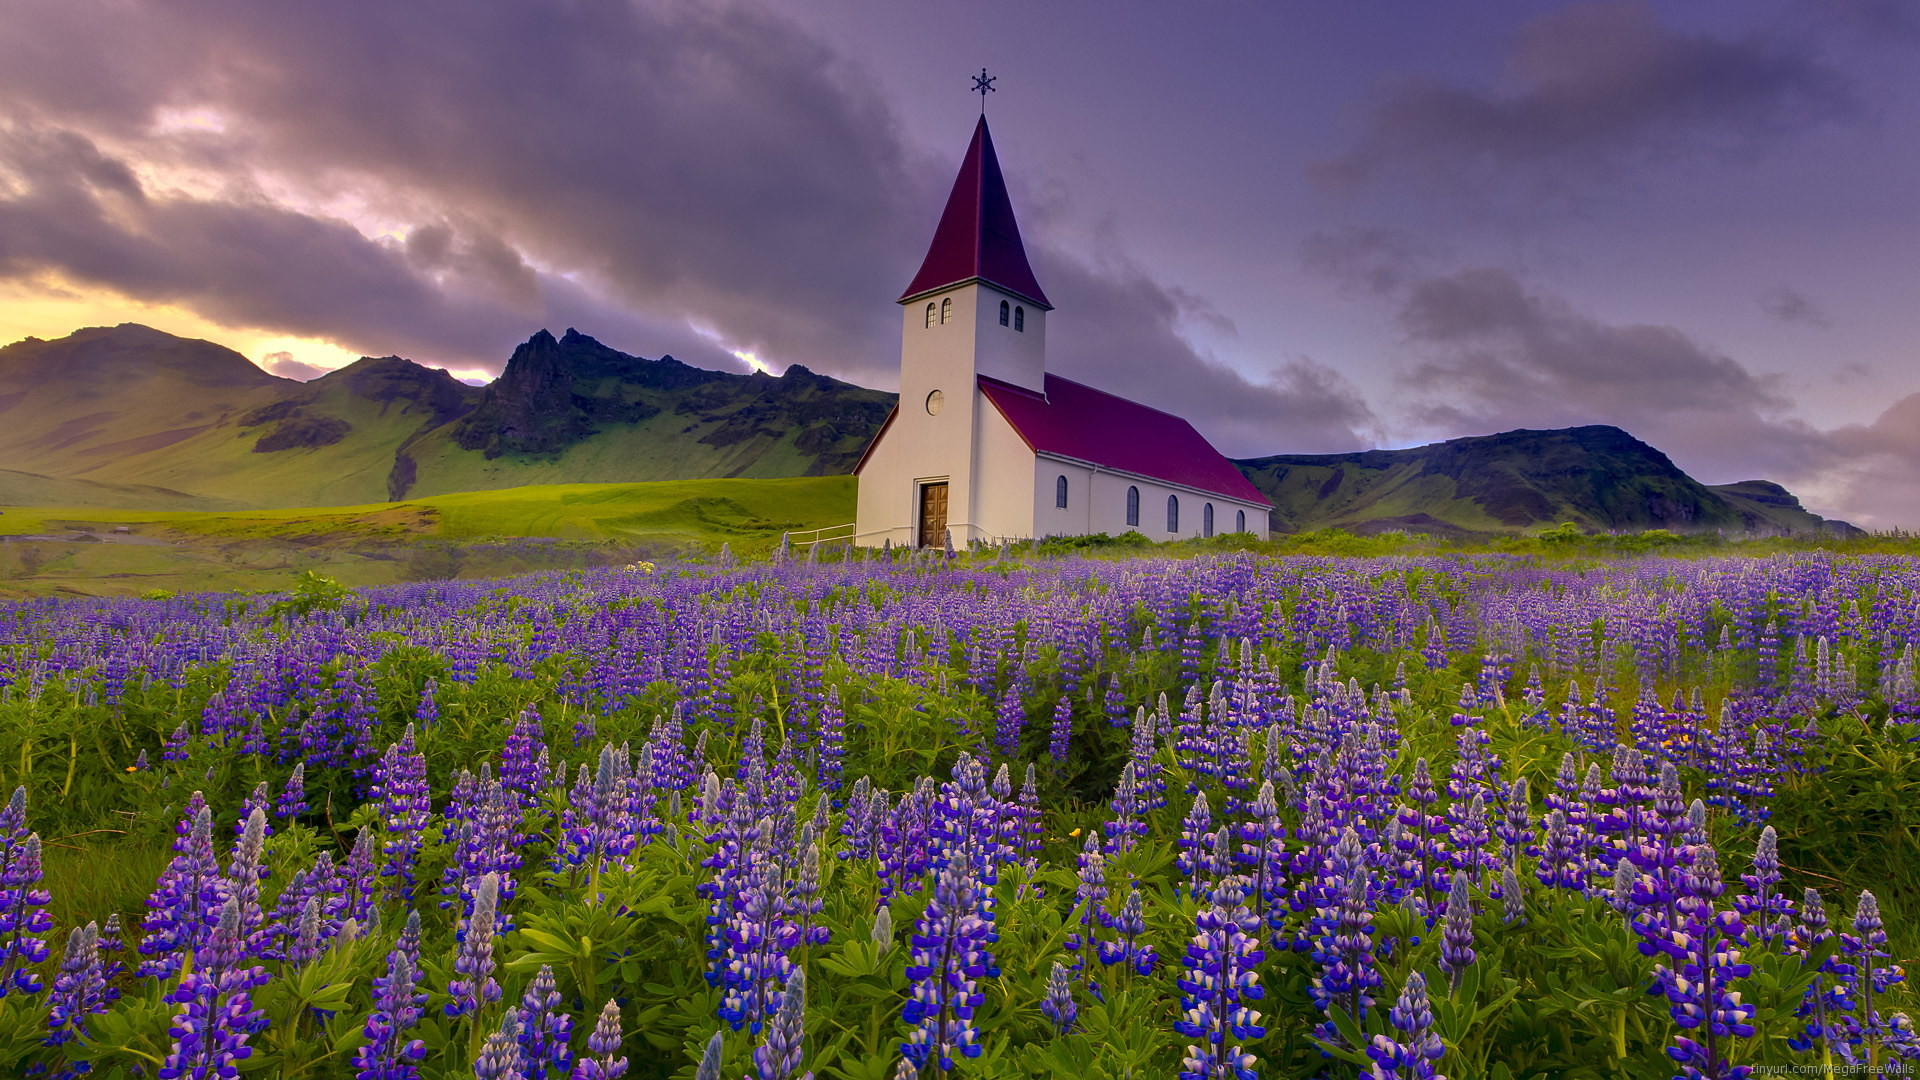 1920x1080 Religious - Church Flower Field Purple Purple Flower Lupine Steeple Chapel  Religious Wallpaper